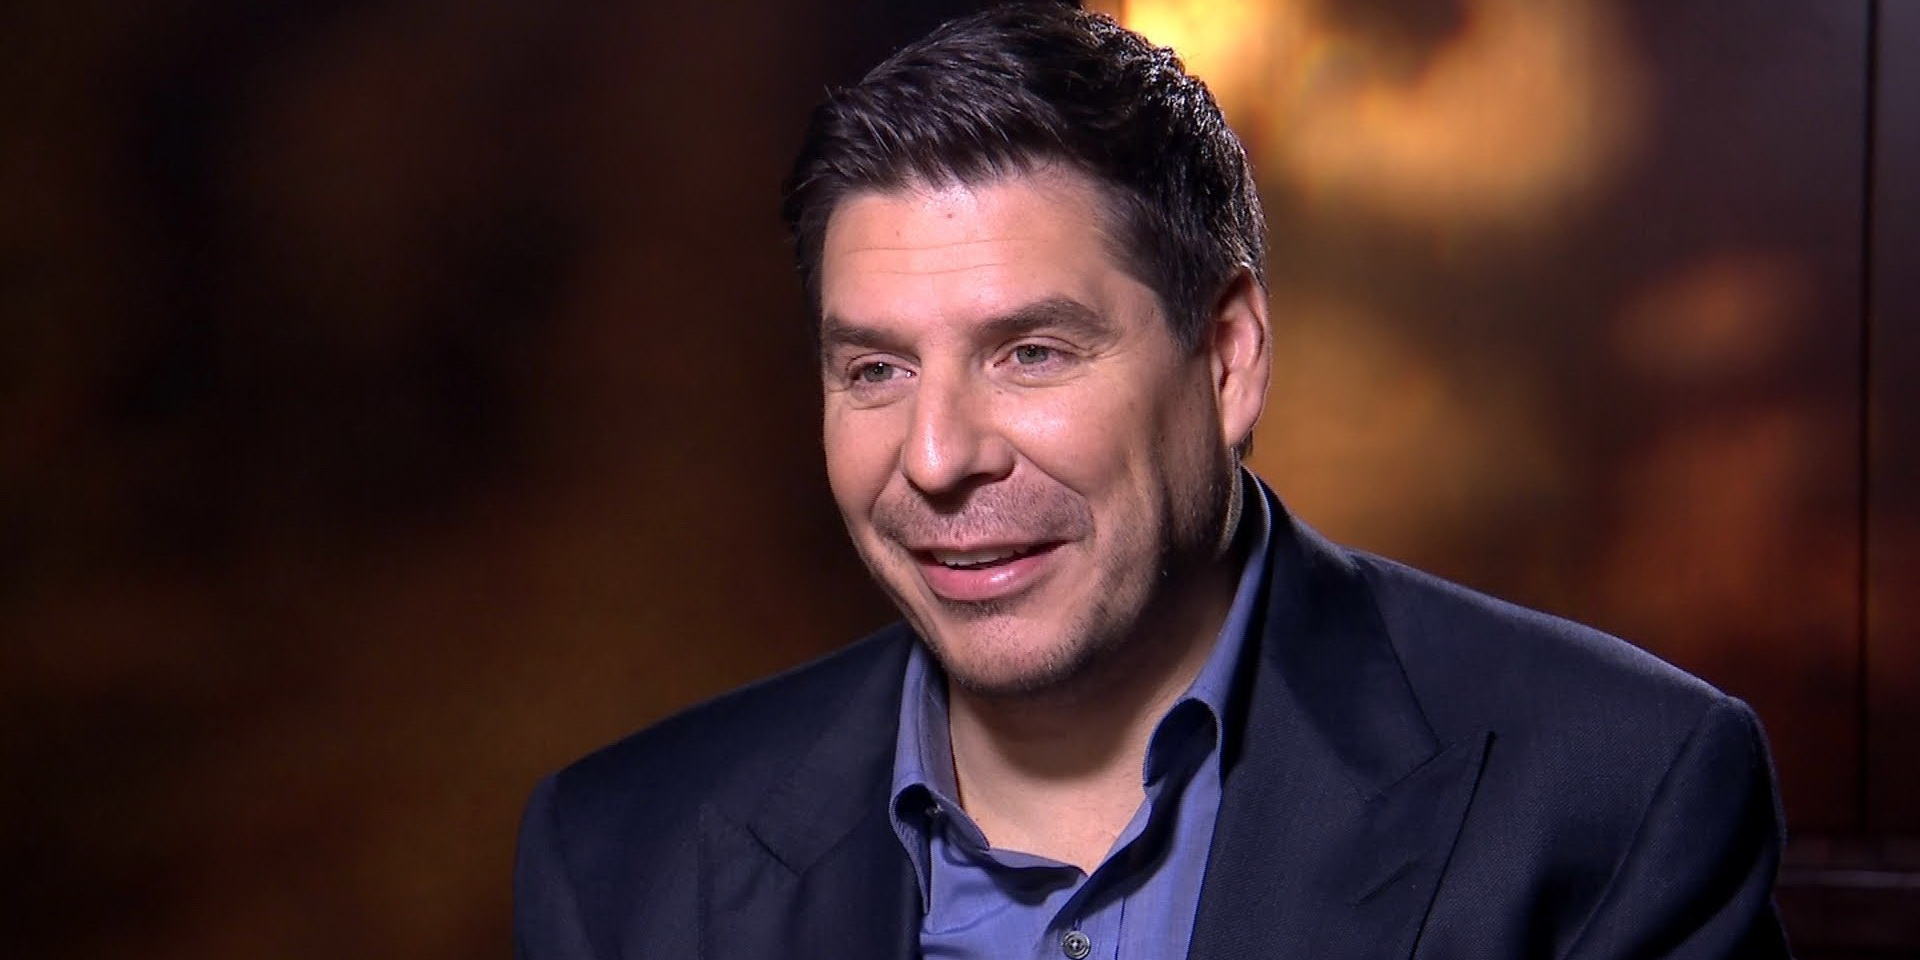 the life and work of marcelo claure